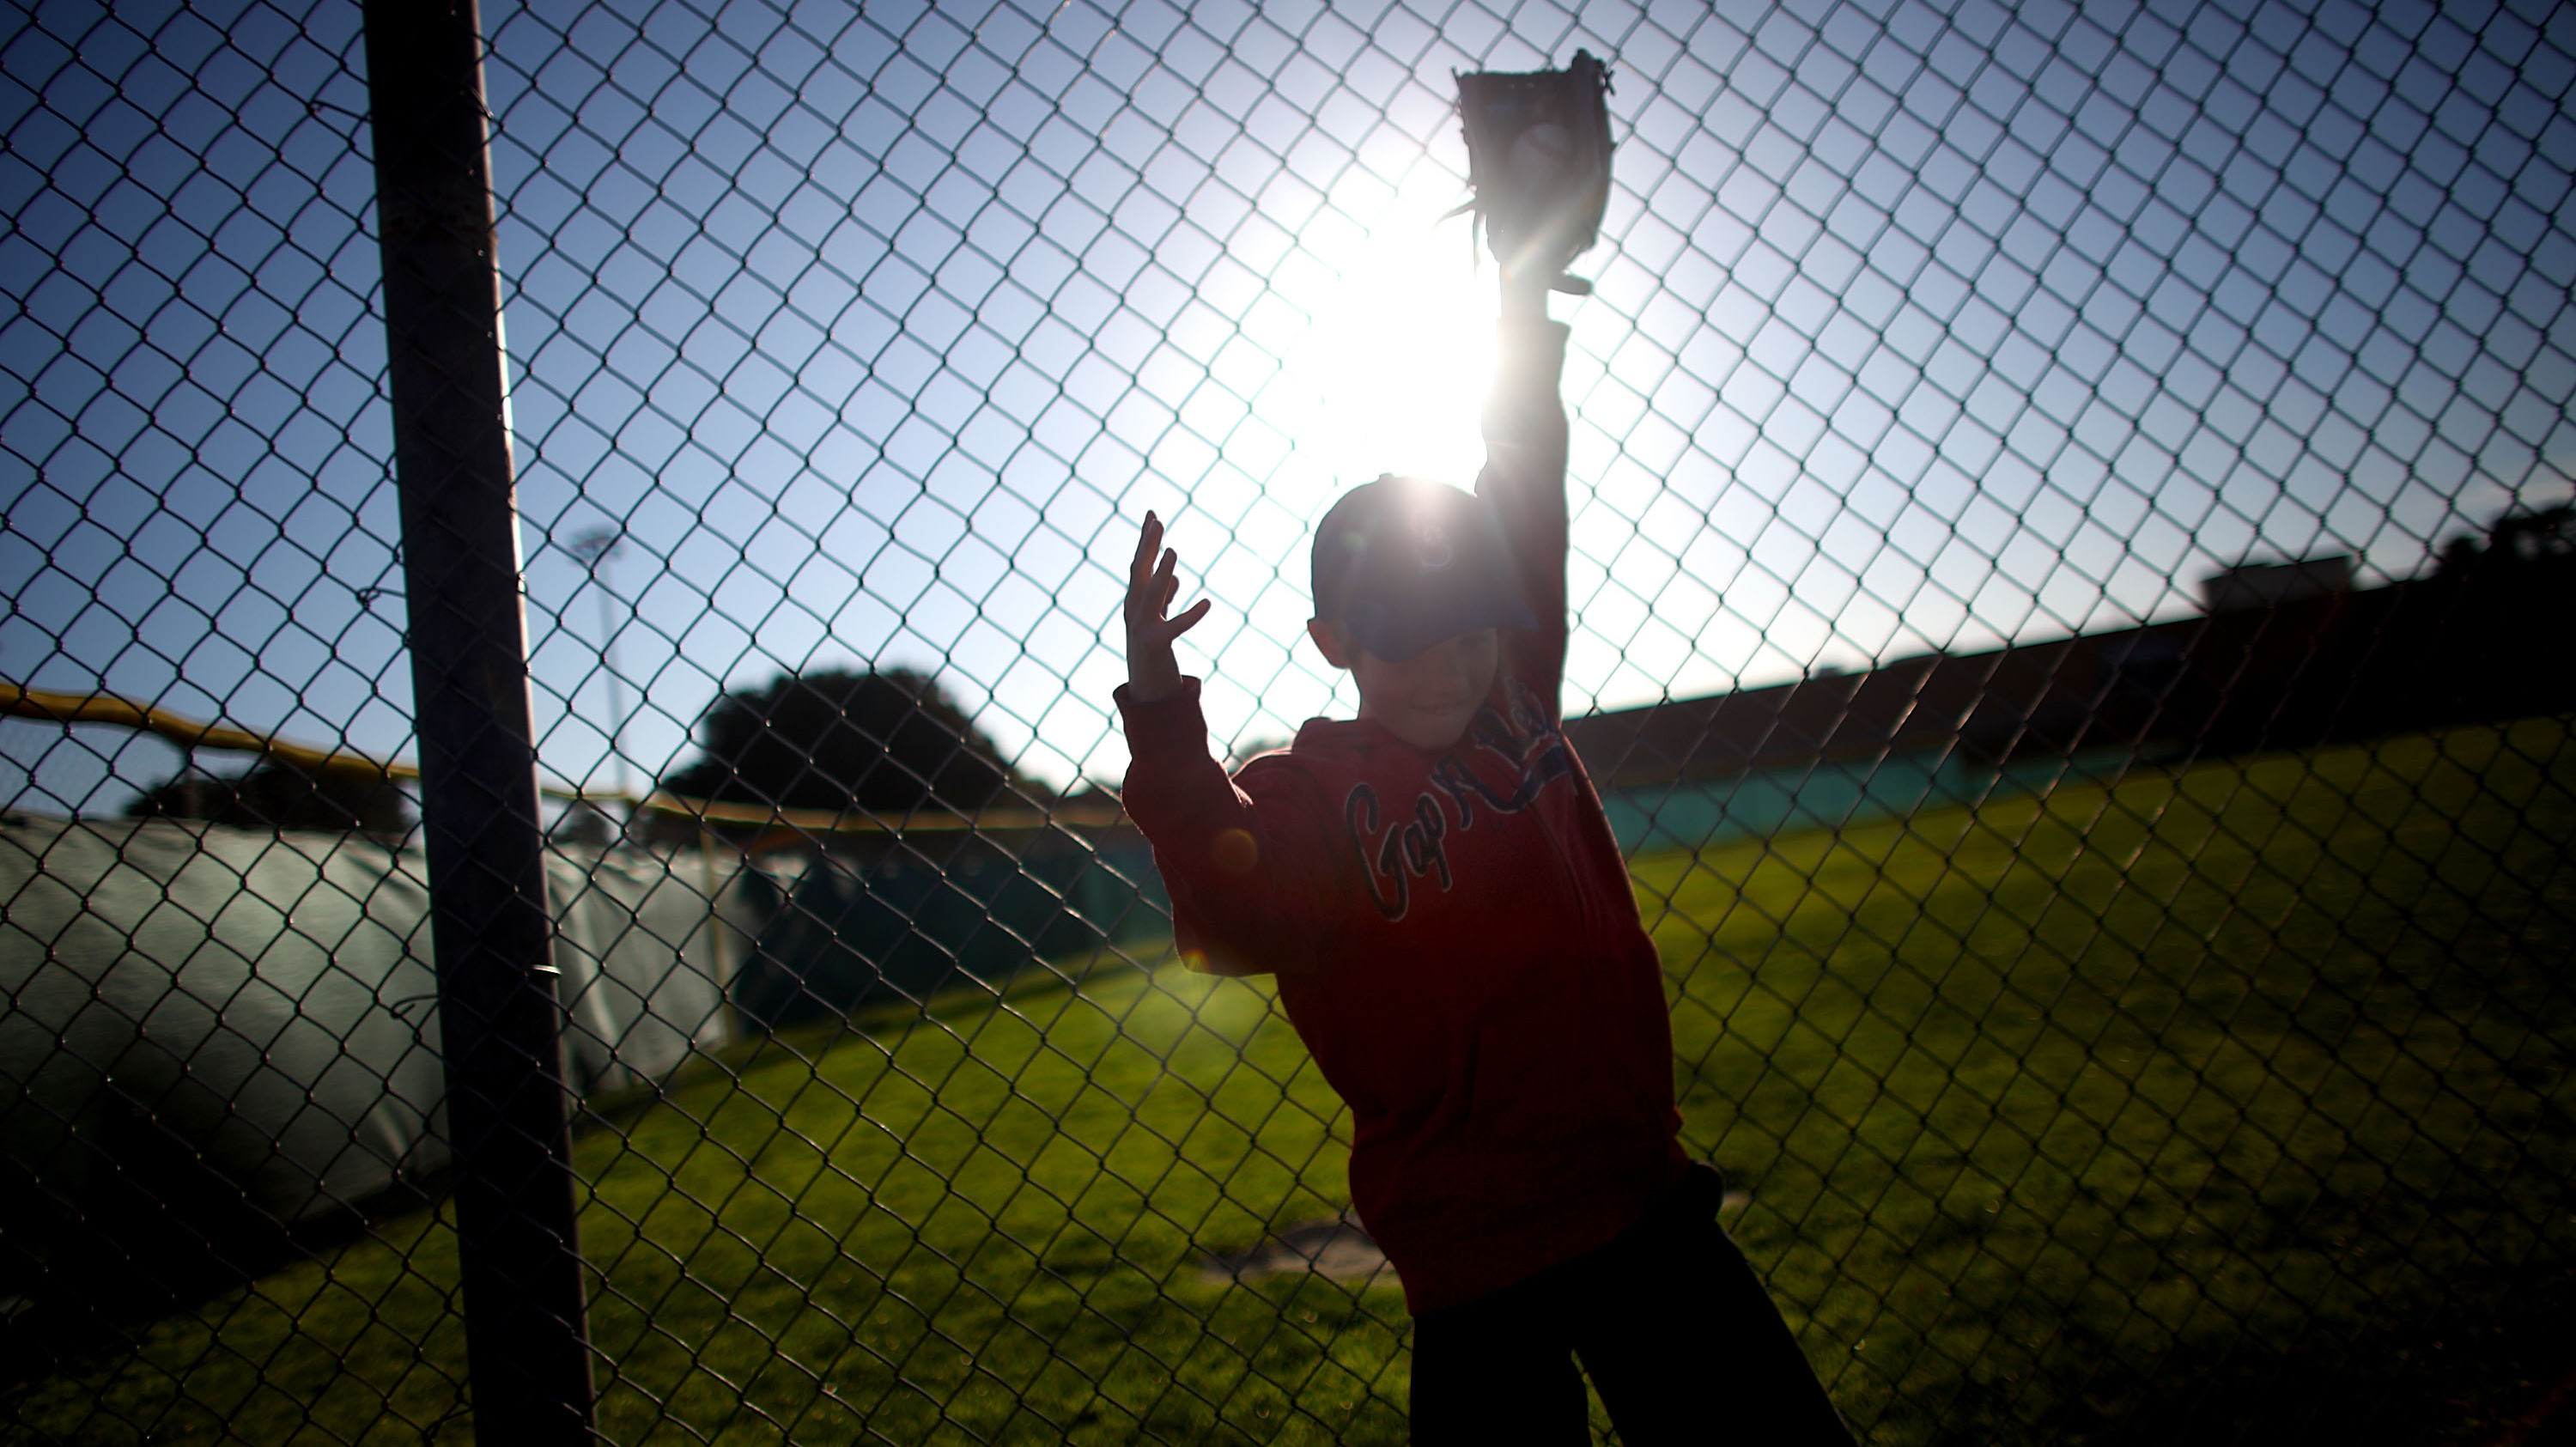 Alec Condes, 9, gets ready for baseball practice at a park in Los Angeles.